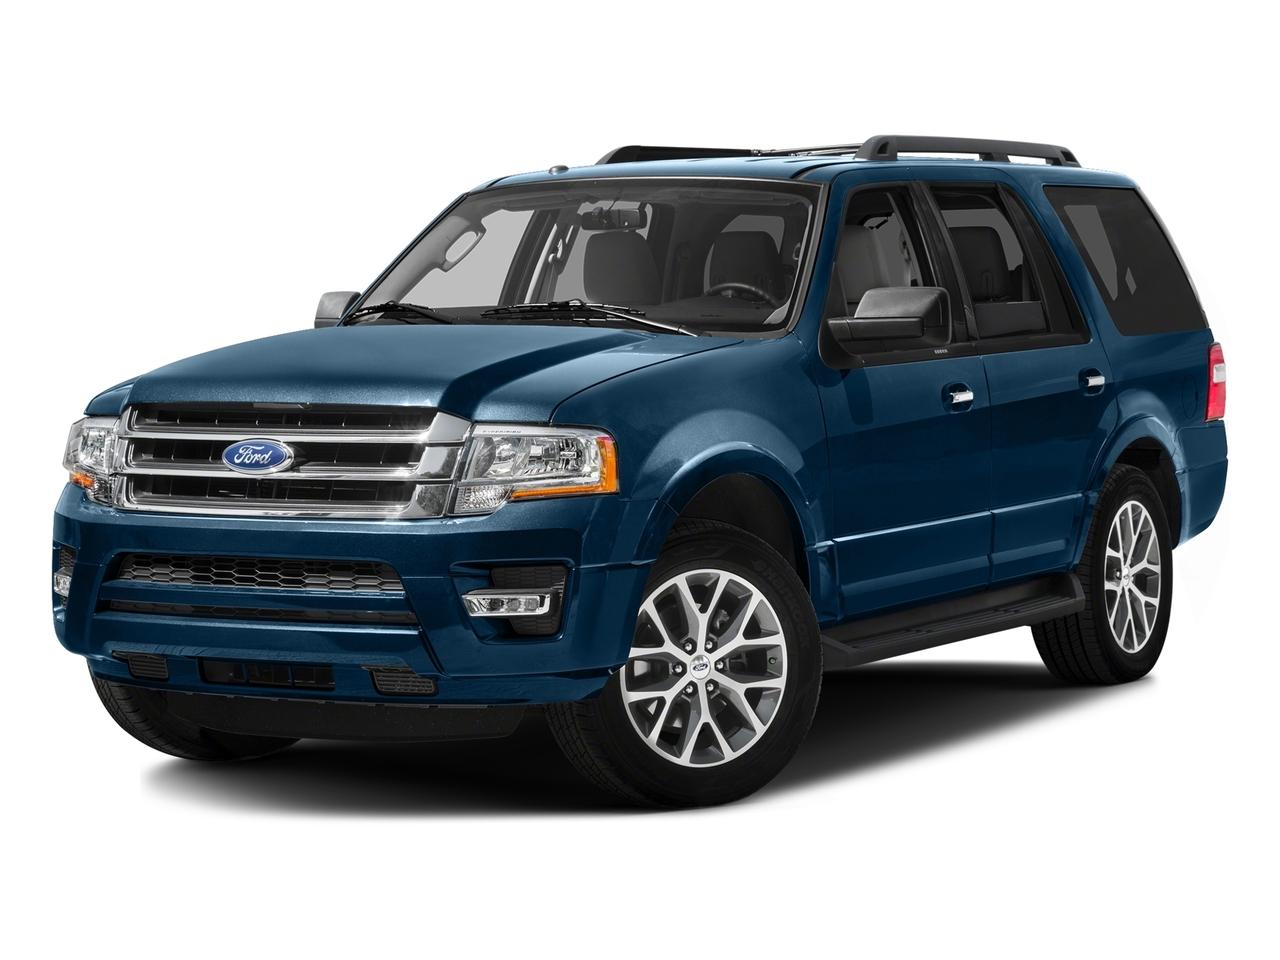 2016 Ford Expedition Vehicle Photo in Colorado Springs, CO 80905